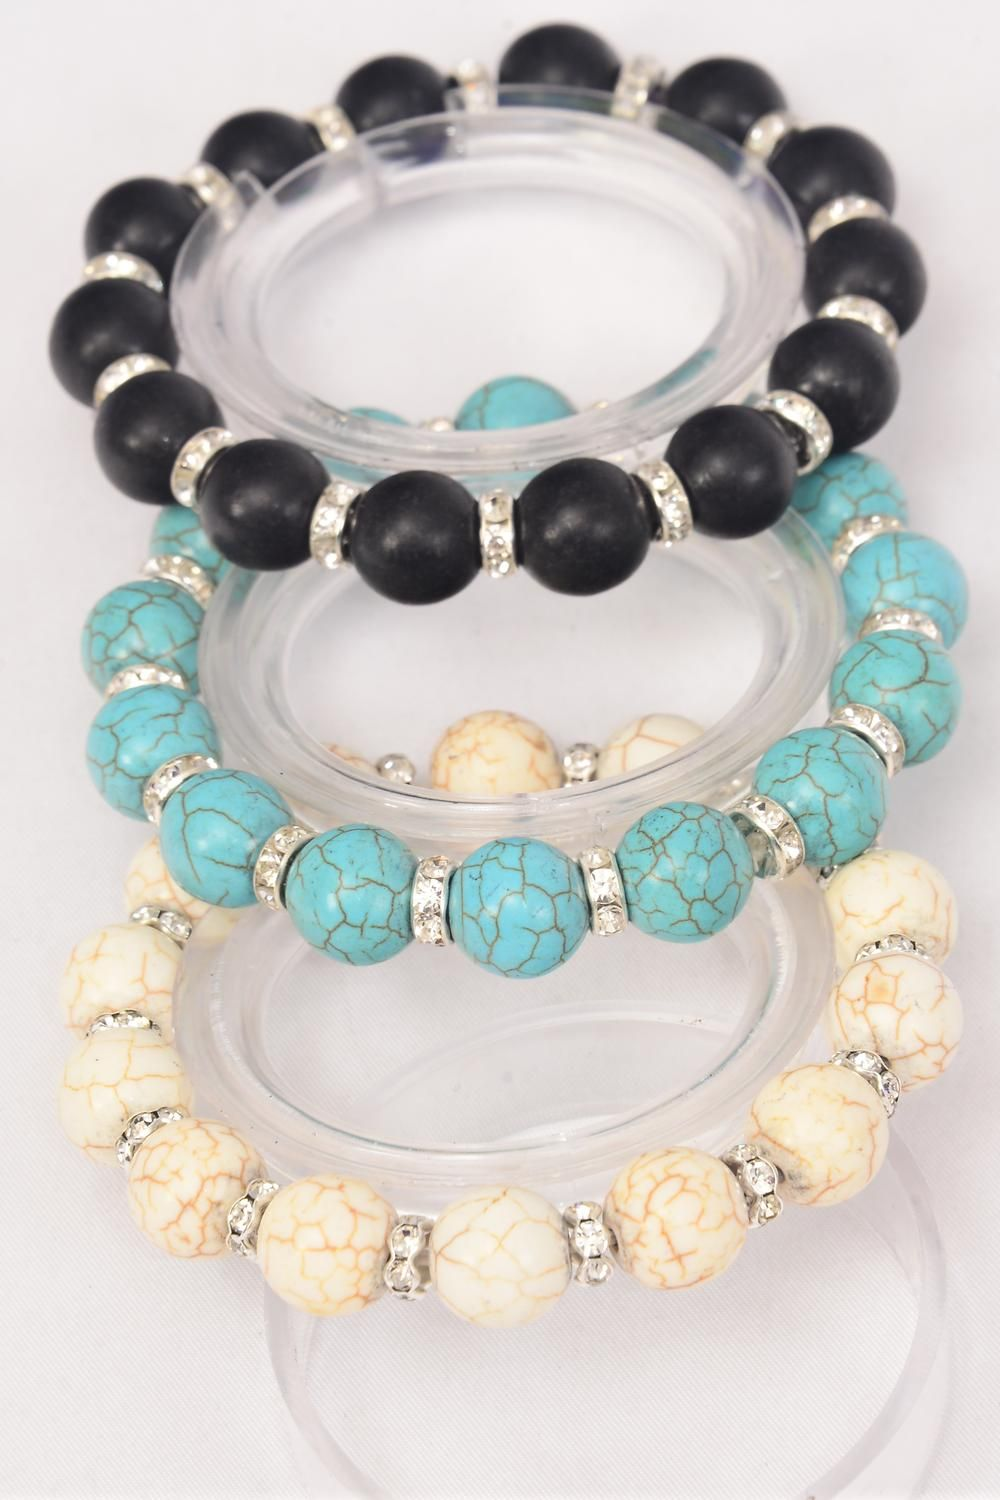 Bracelet 12 mm Semiprecious Stone & Rhinestone Bessel Stretch/DZ **Stretch** 4 Black,4 Ivory,4 Turquoise,3 Color Asst,Hang Tag & Opp Bag & UPC Code -